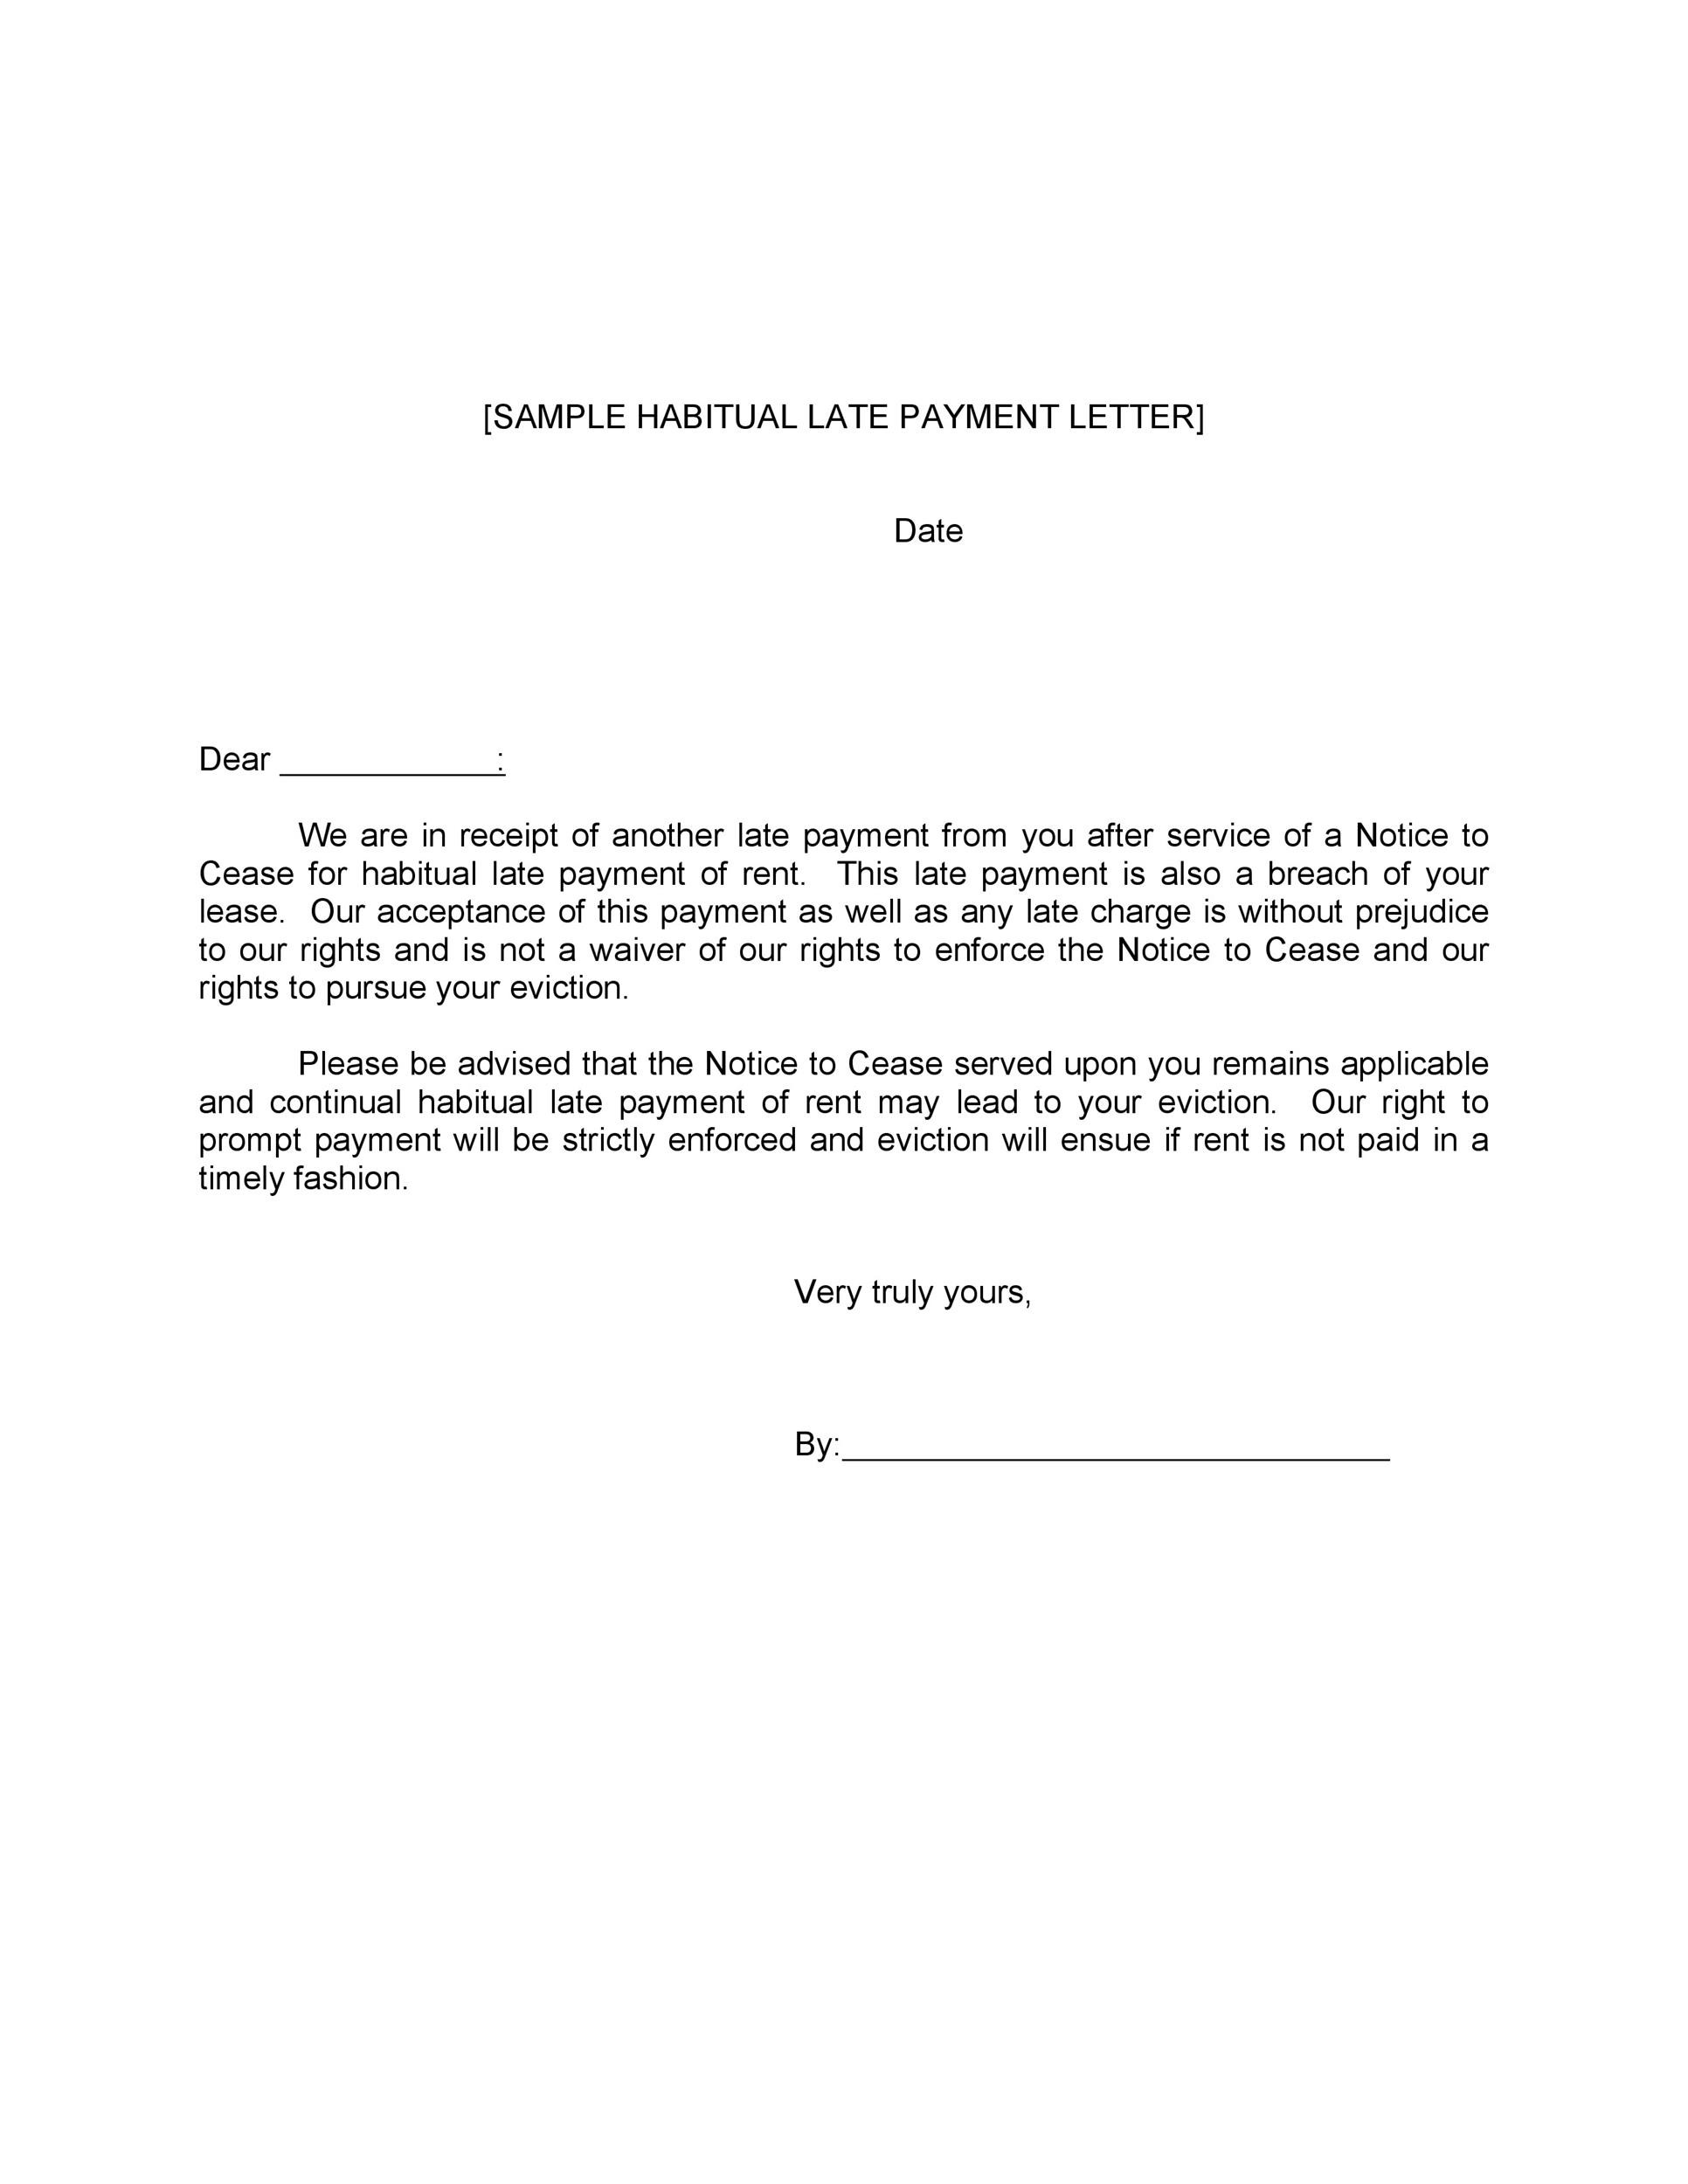 Sample Letter To Tenant For Late Rent from templatelab.com